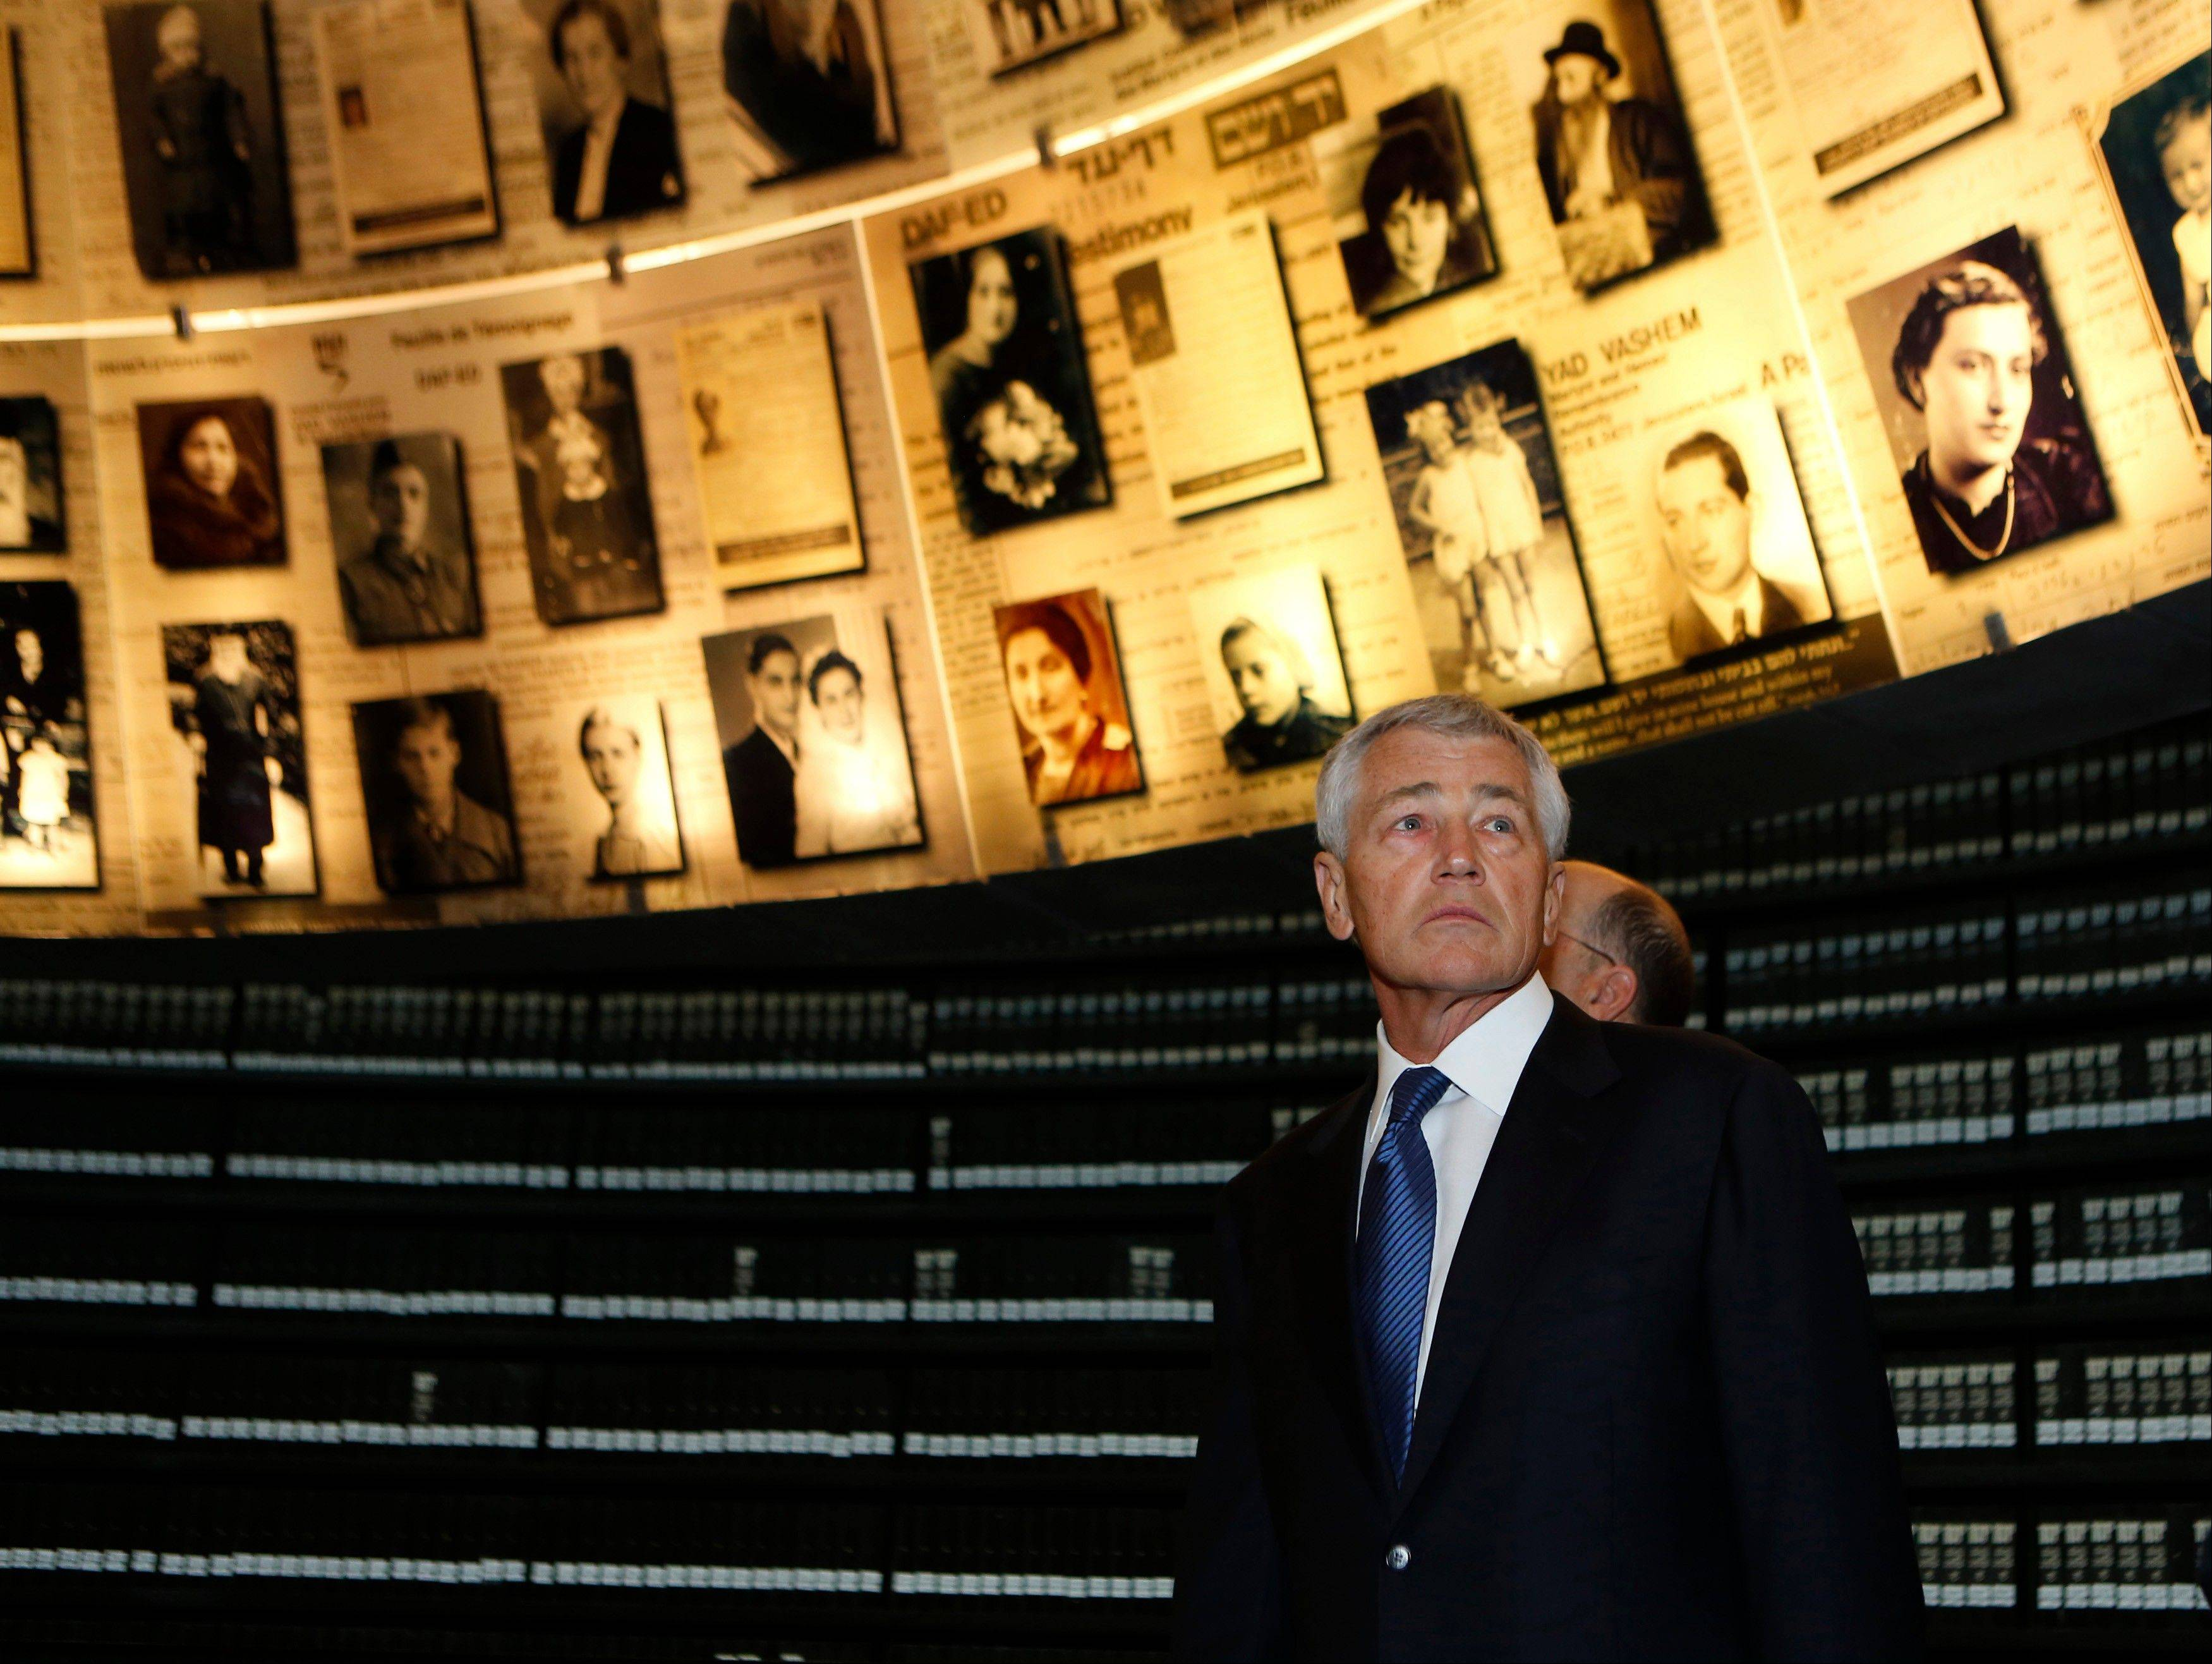 U.S. Secretary of Defense Chuck Hagel looks at pictures of Jews killed in the Holocaust during a visit to the Hall of Names at Yad Vashem's Holocaust History Museum in Jerusalem, Israel, on Sunday.